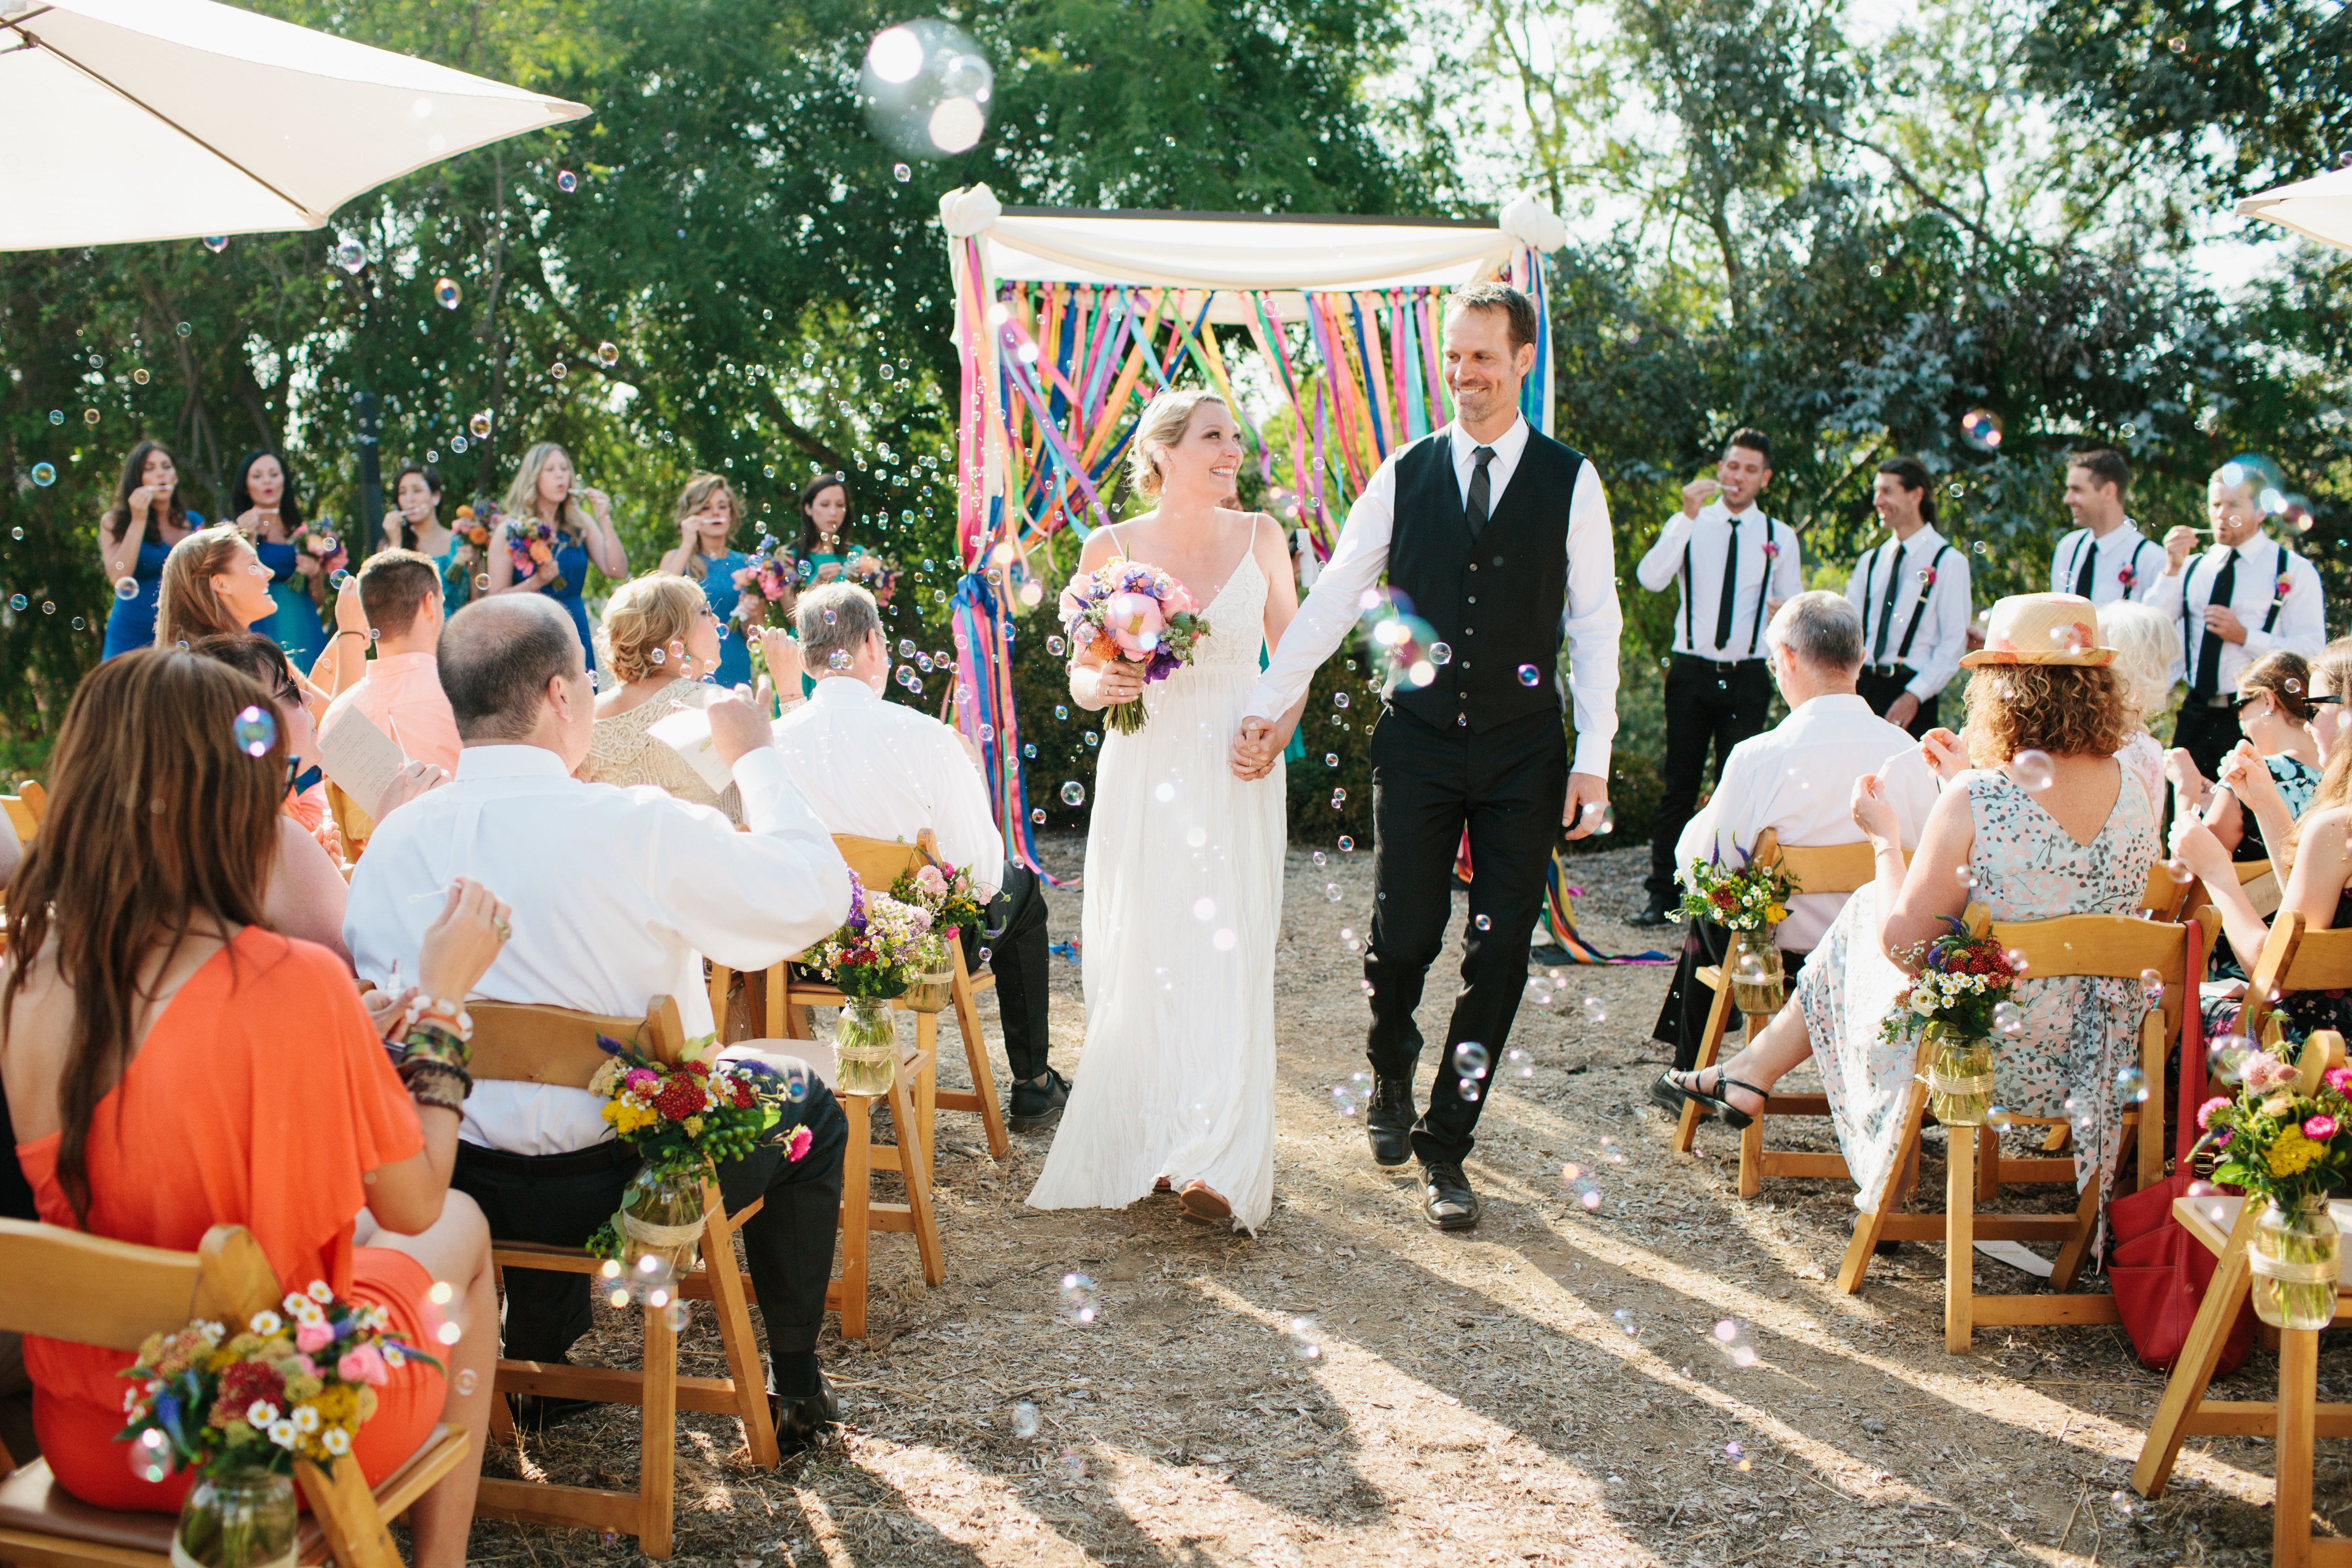 Exceptional 2 Use Colorful Streamers To Punch Up An Outdoor Ceremony Space.